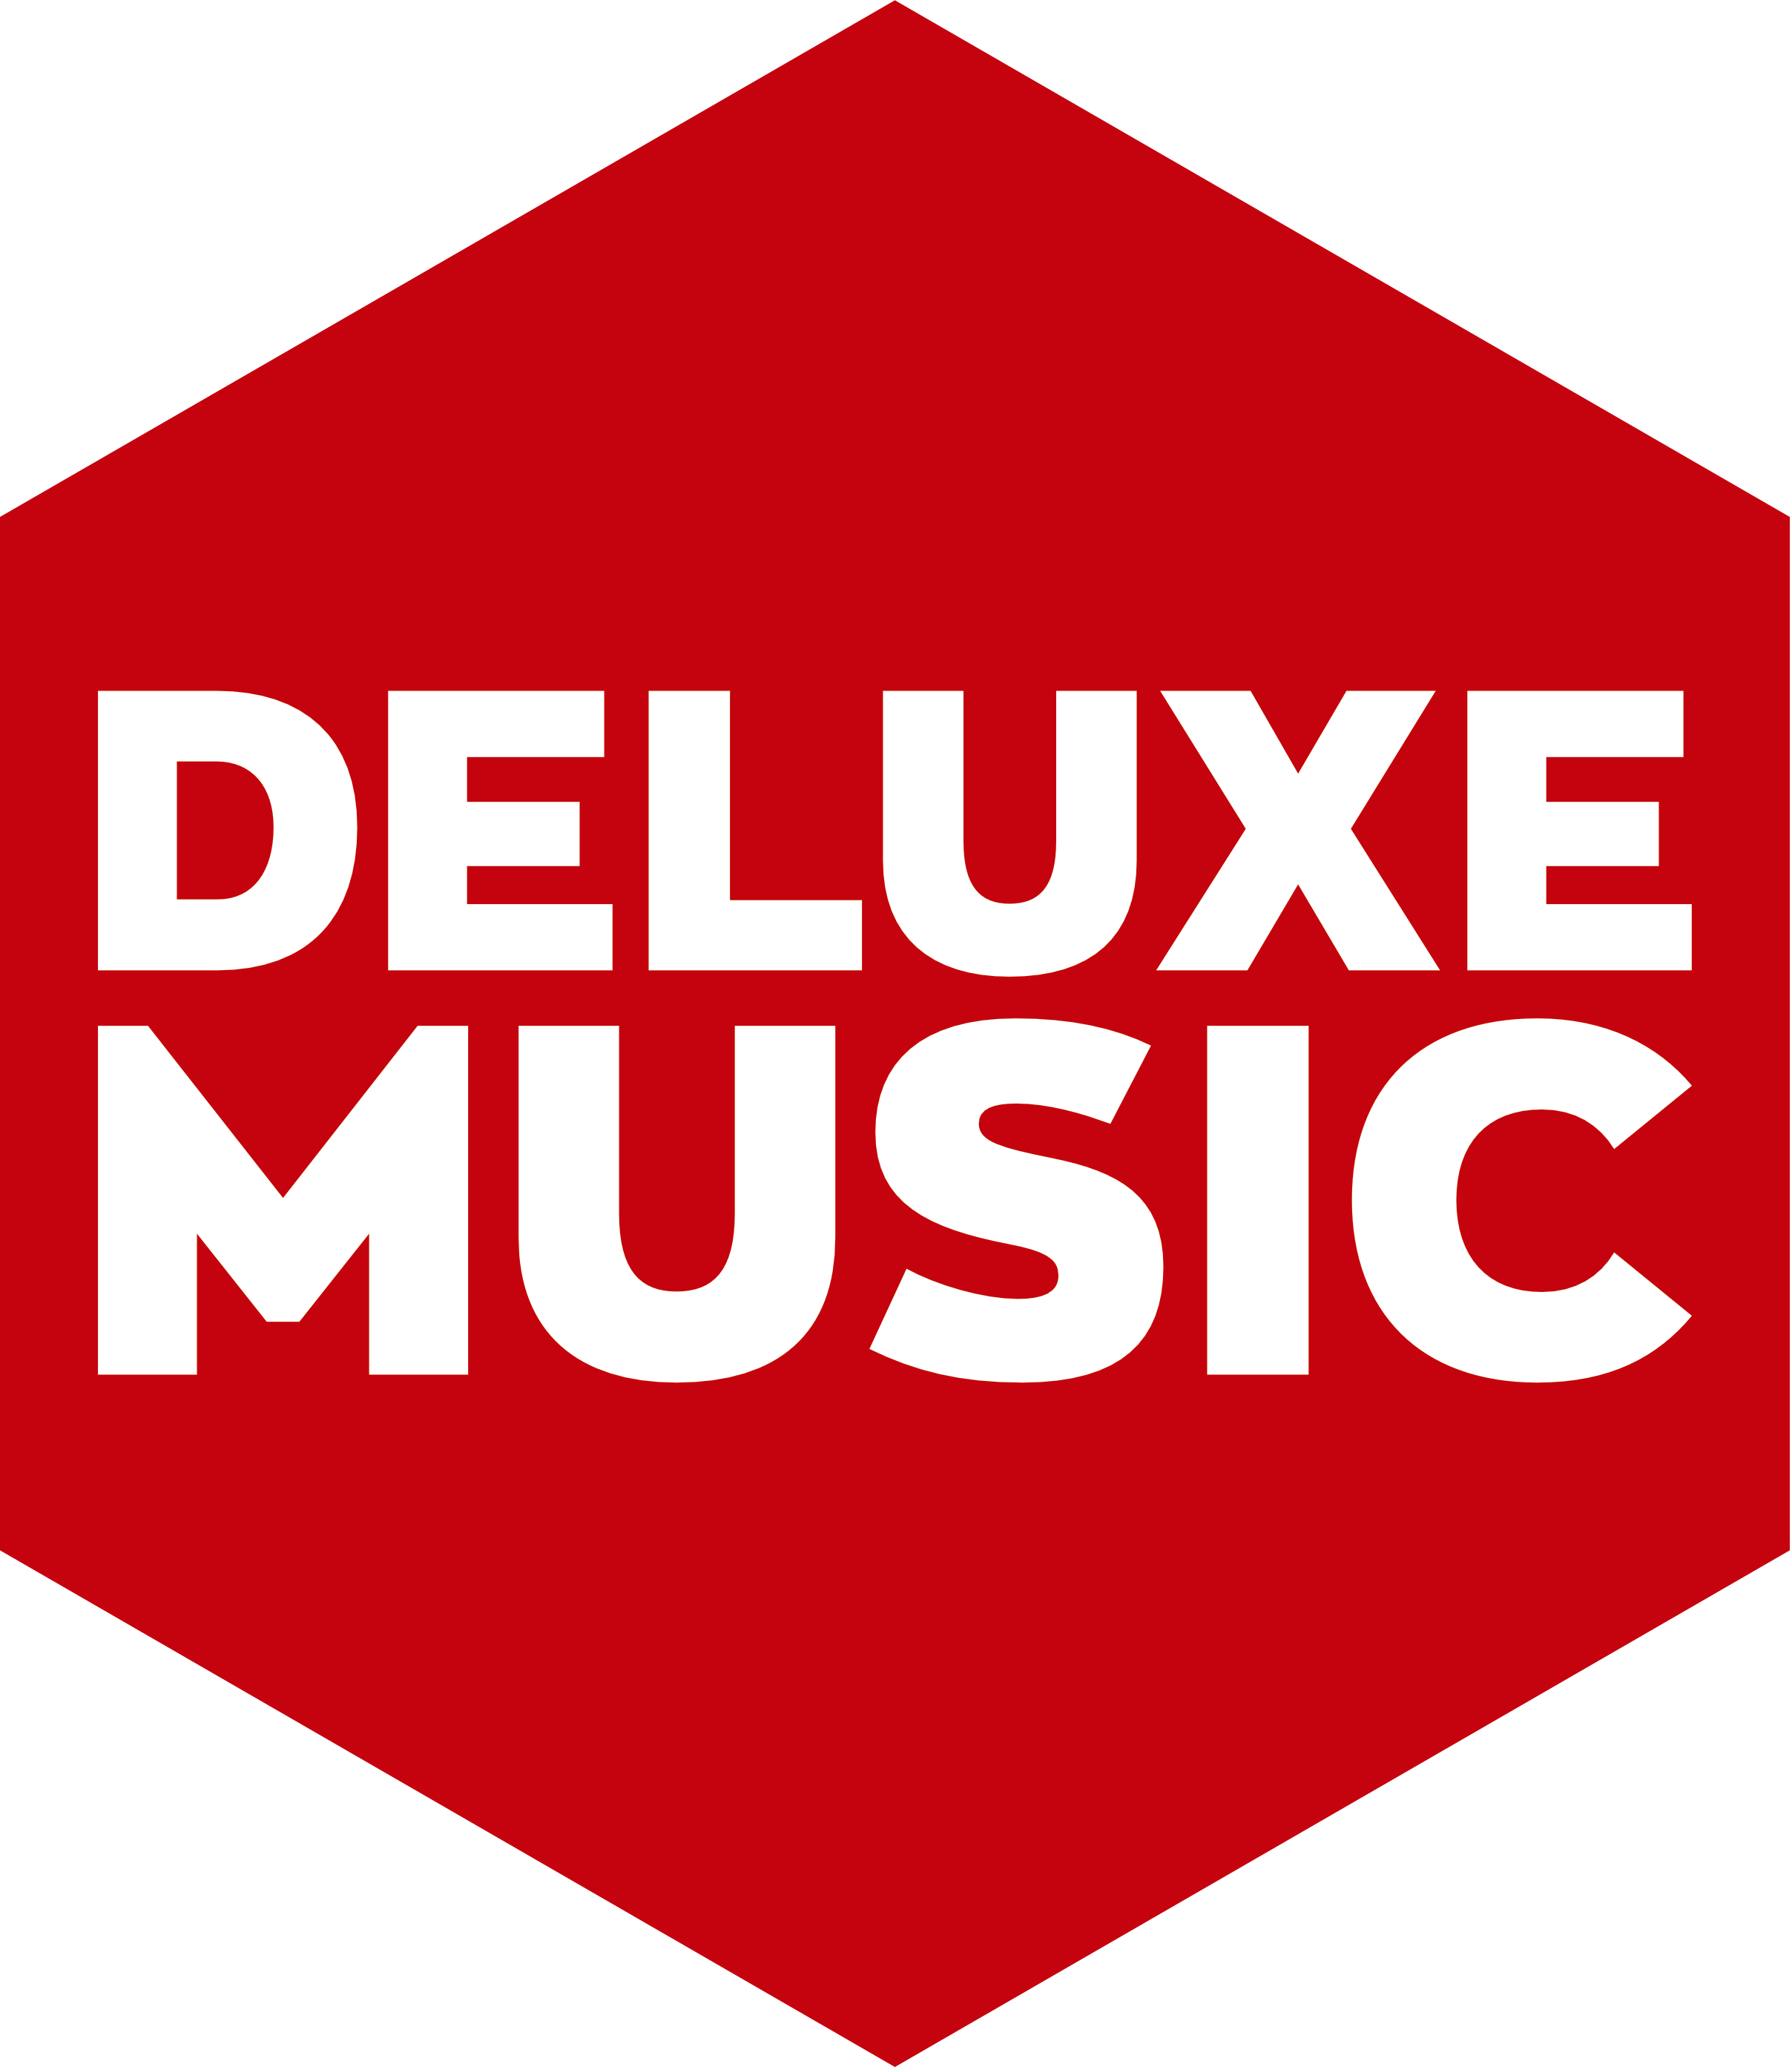 Deluxe Music file icon